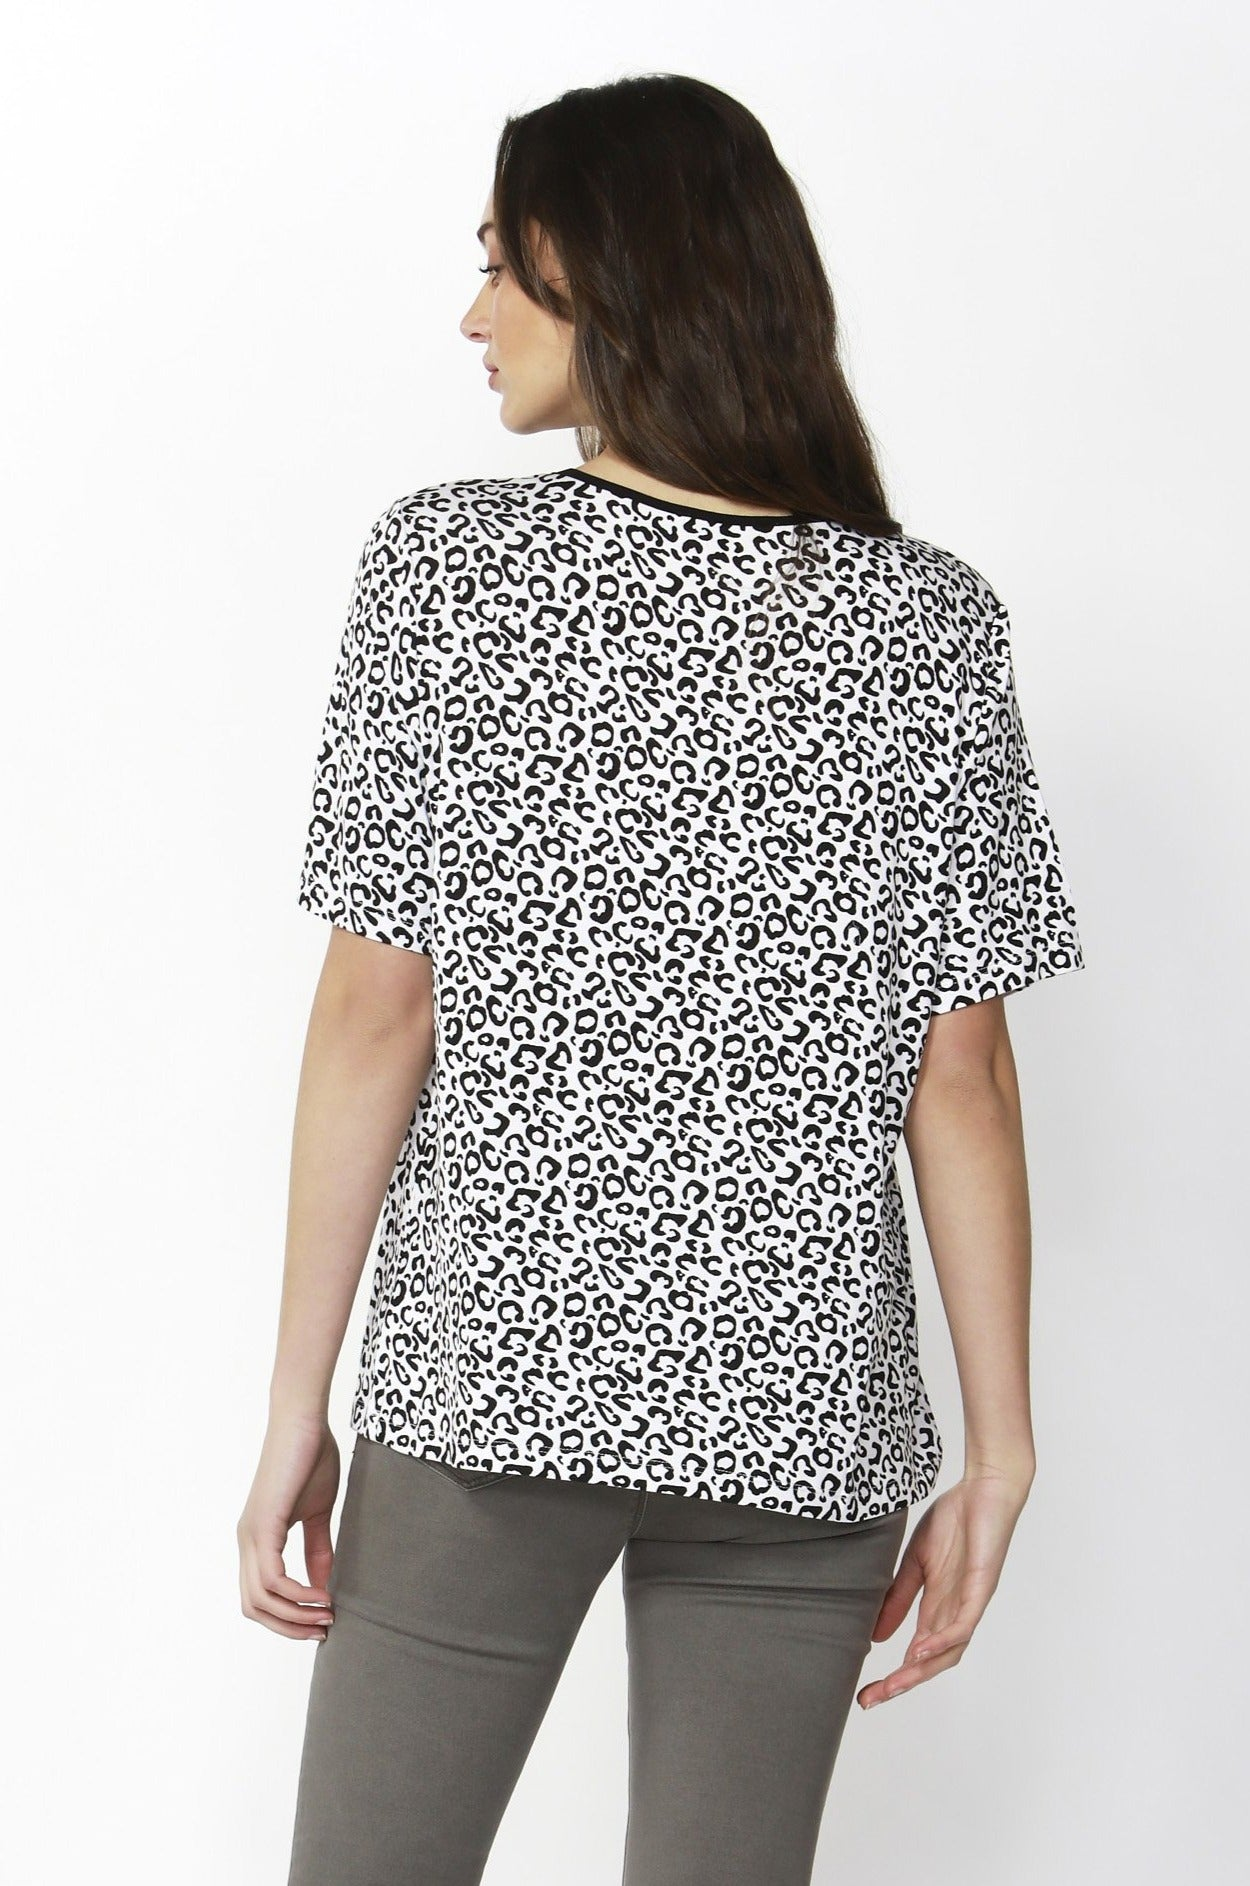 Betty Basics Los Angeles Tee in Snow Leopard